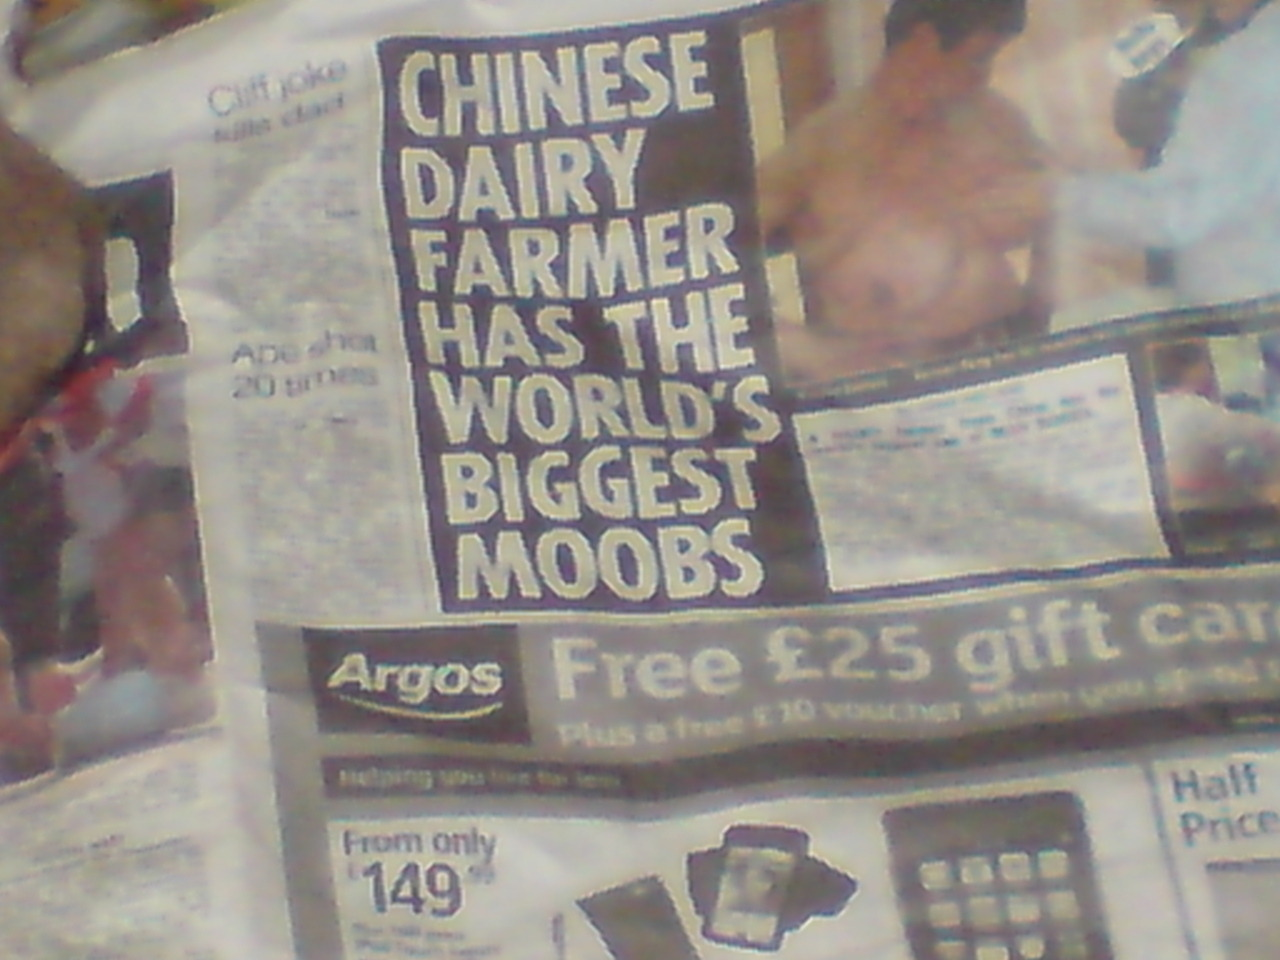 Moobs?  Really? The fact that he's a dairy farmer is just classic IRONY!!